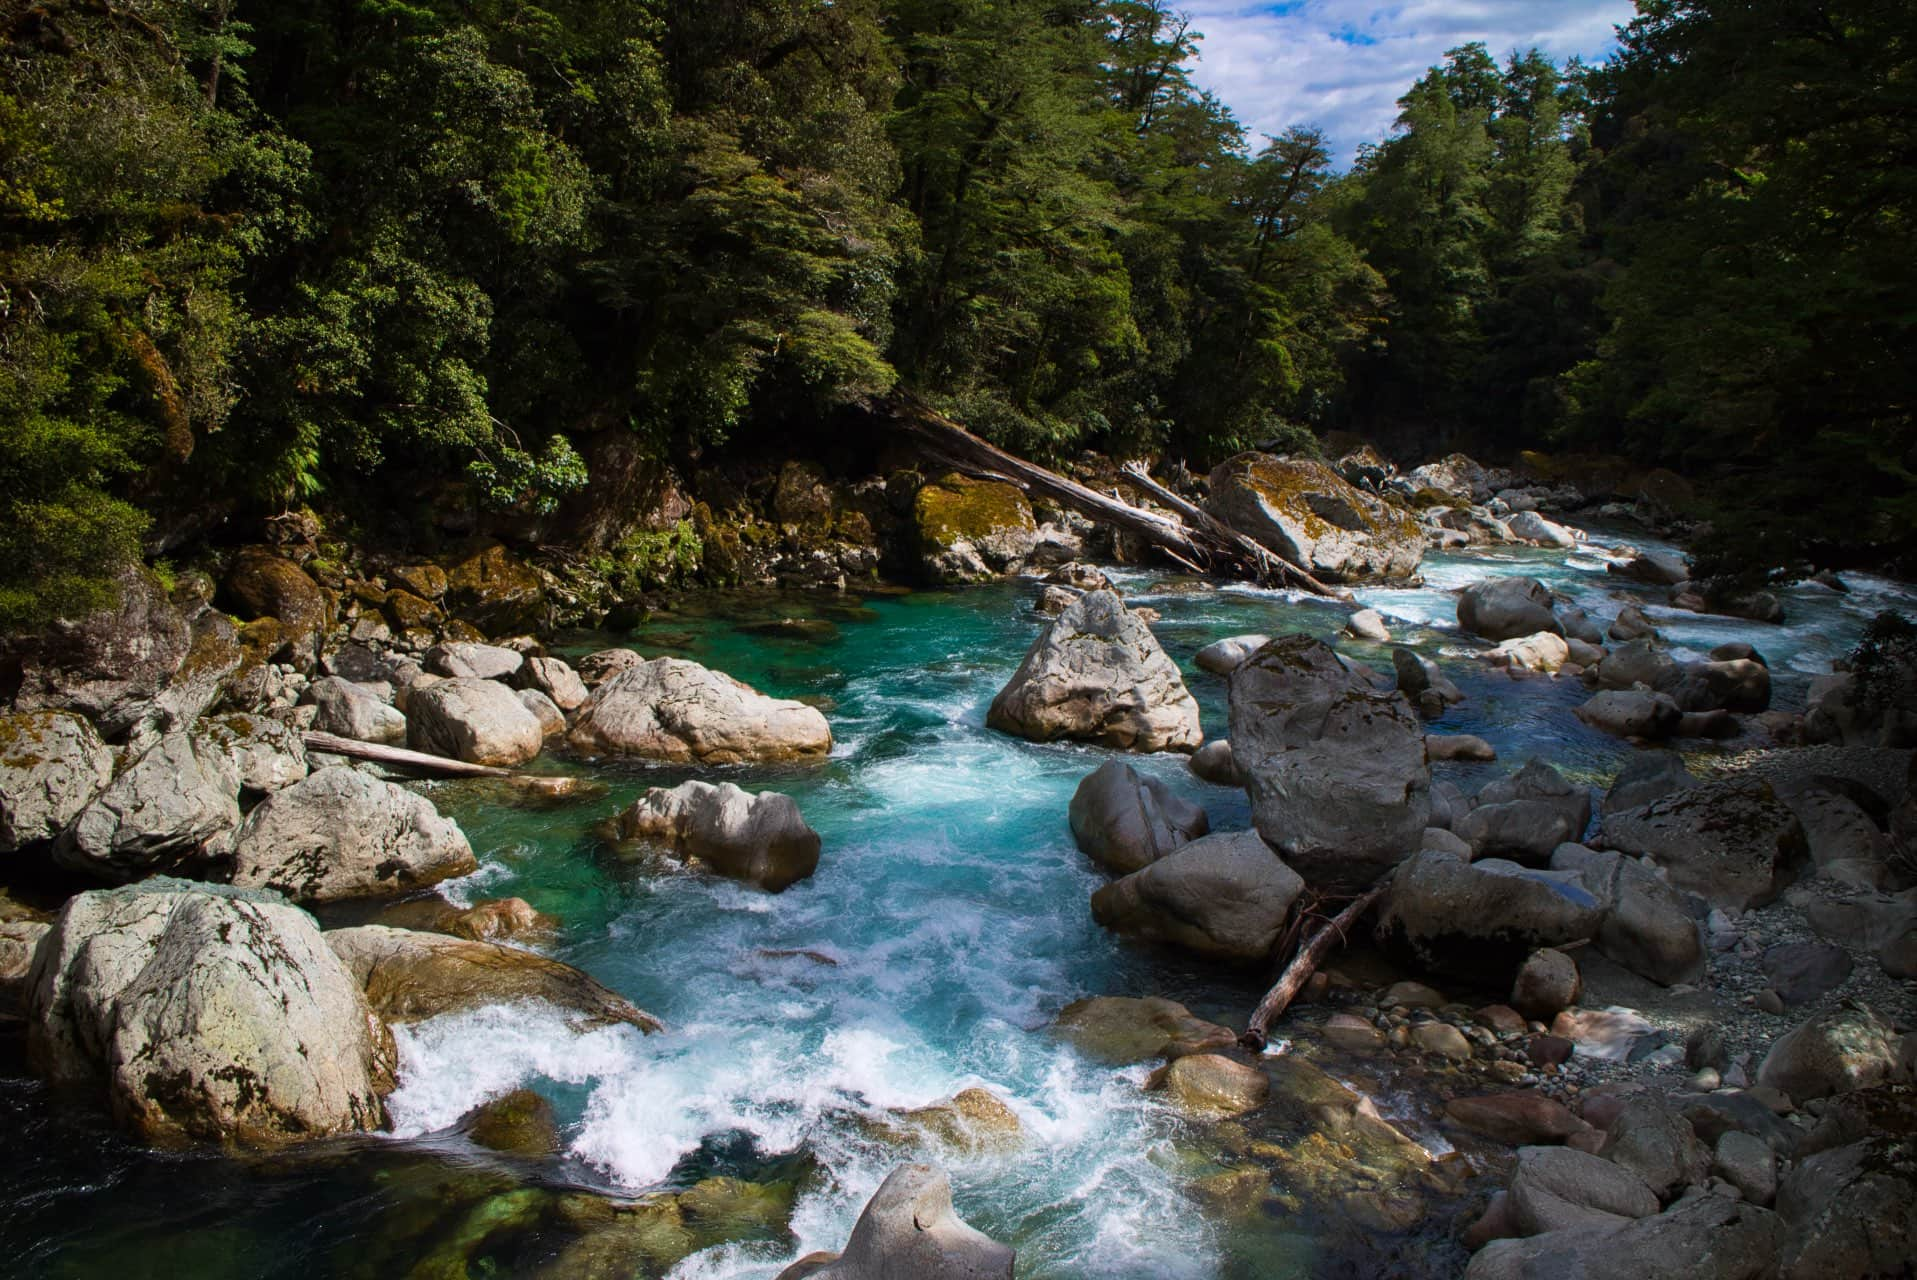 Moraine-Creek-Southland-Fiordland-National-Park-Milford-Sound-Highway-Southland